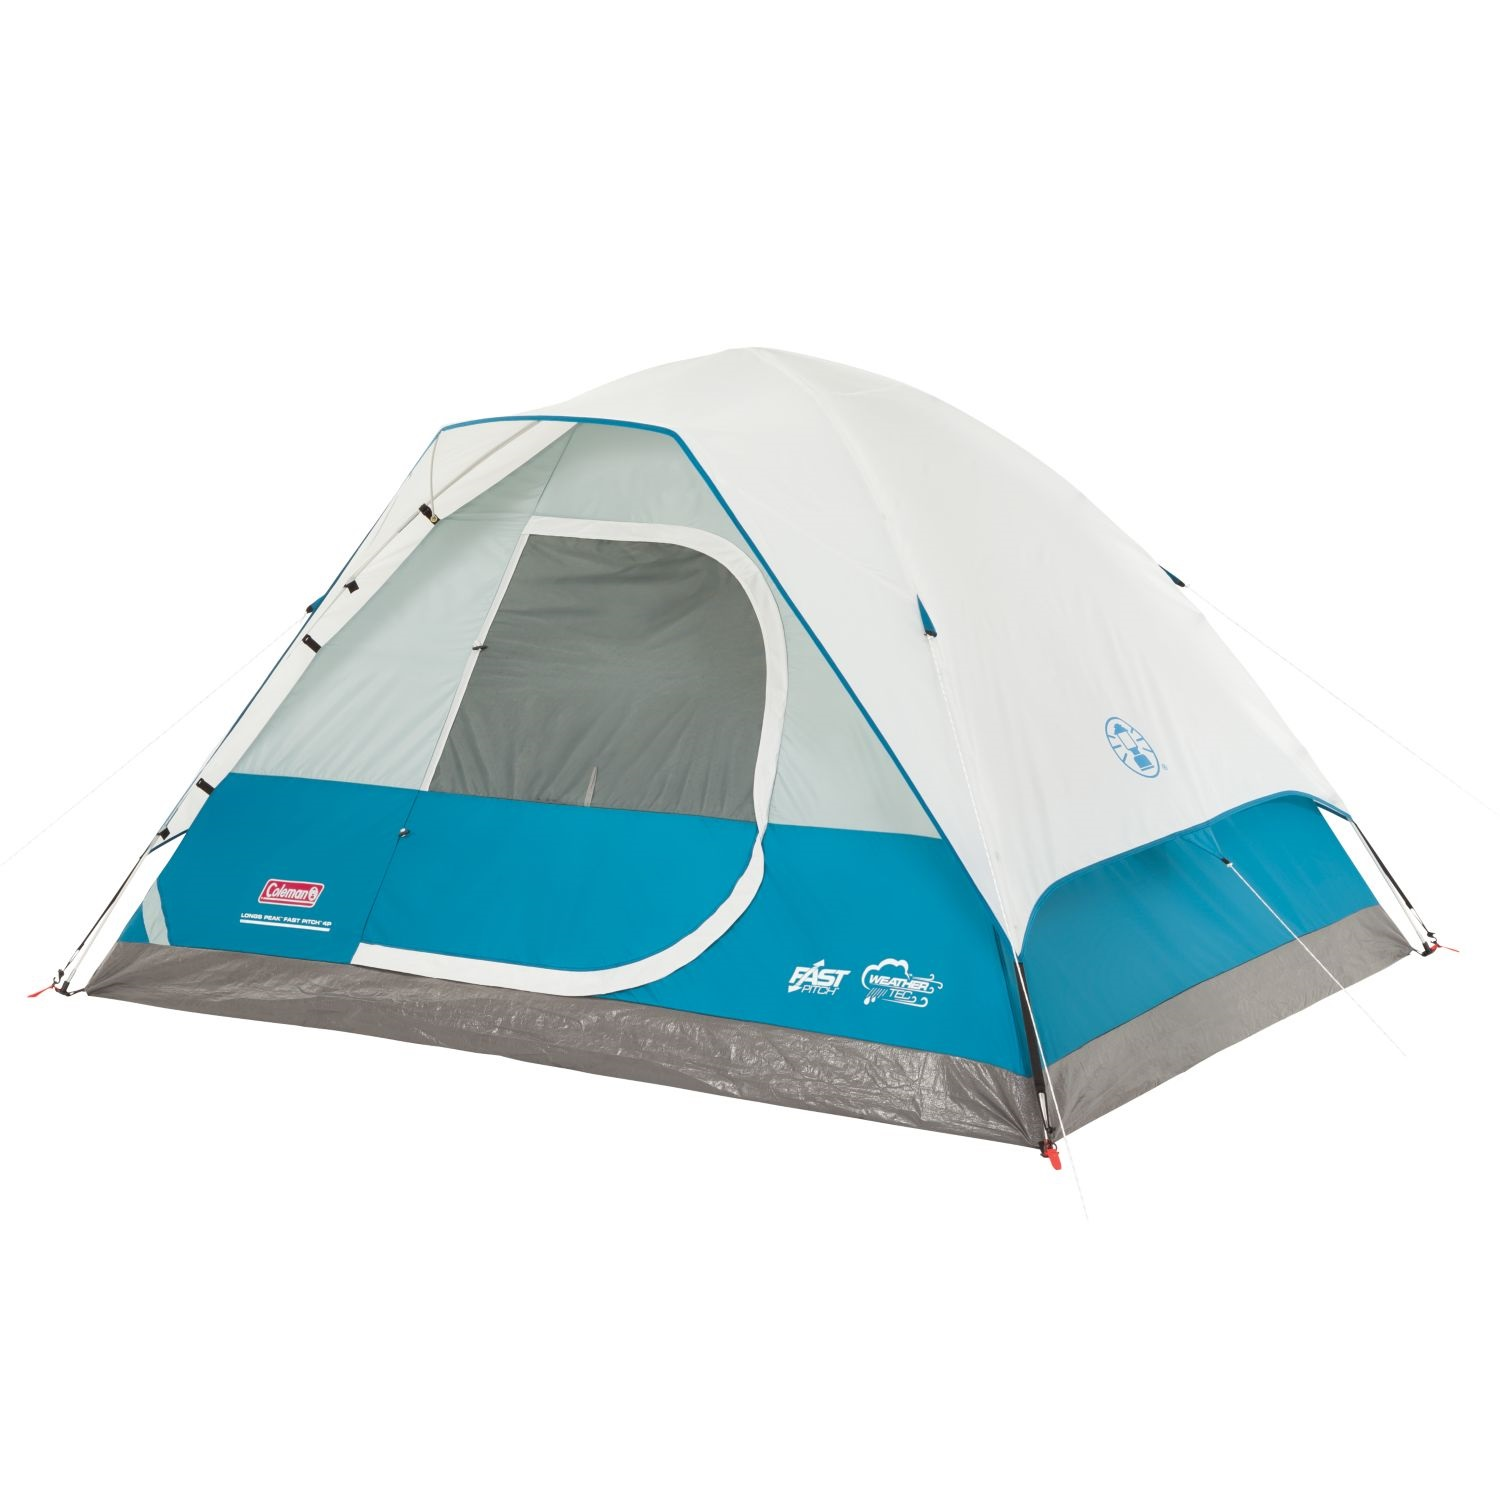 Porch Light Youth Shelter: Coleman Longs Peak 4 Person Fast Pitch Dome Tent